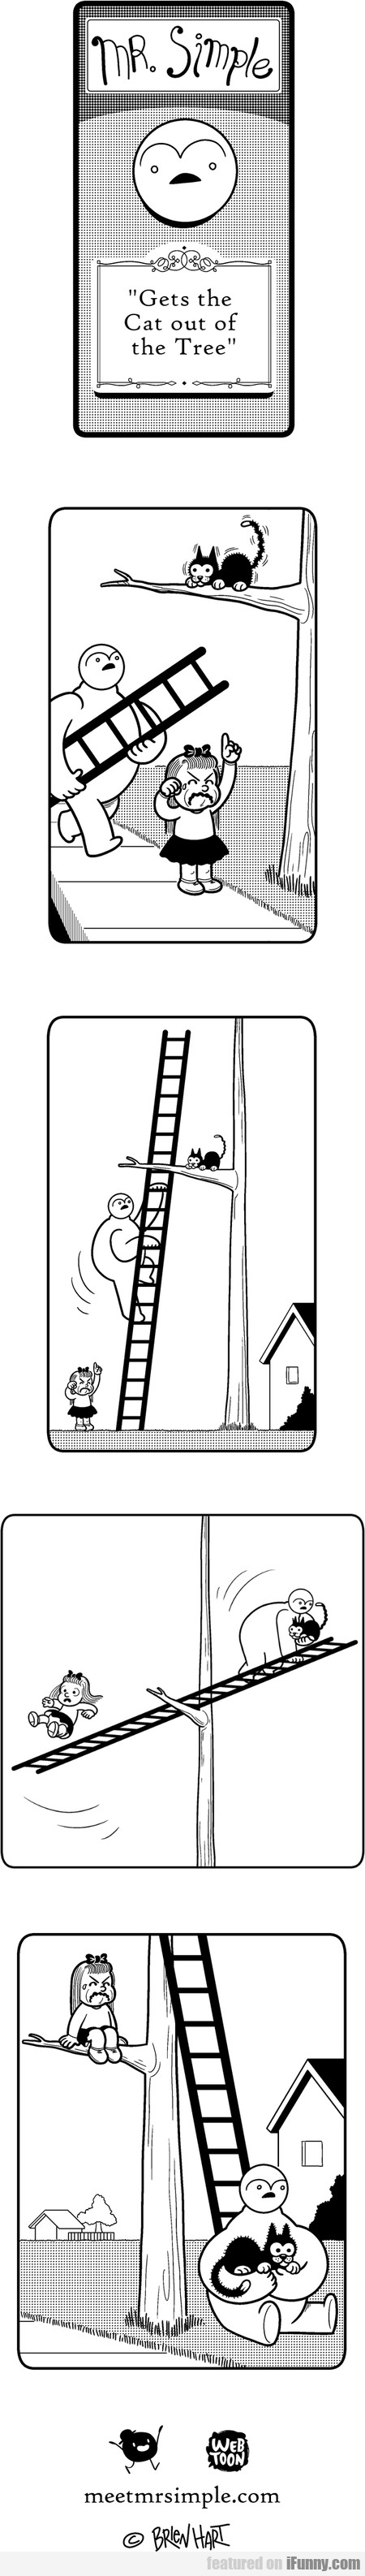 Mr. Simple Gets the Cat Out of the Tree